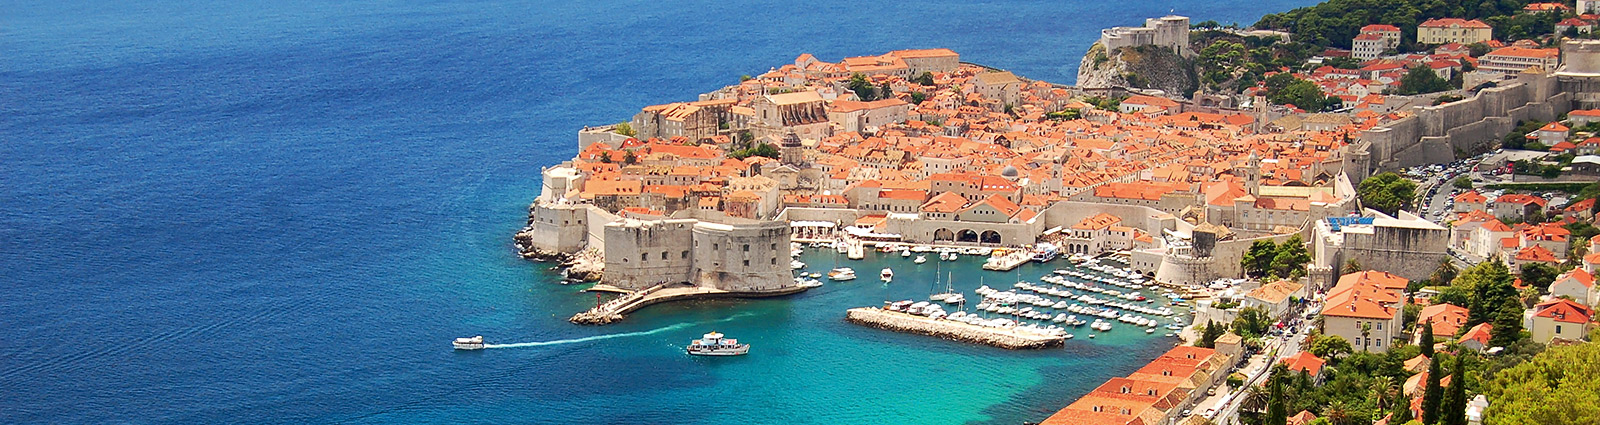 Dubrovnik, Croatia | Valamar Hotels & Resorts